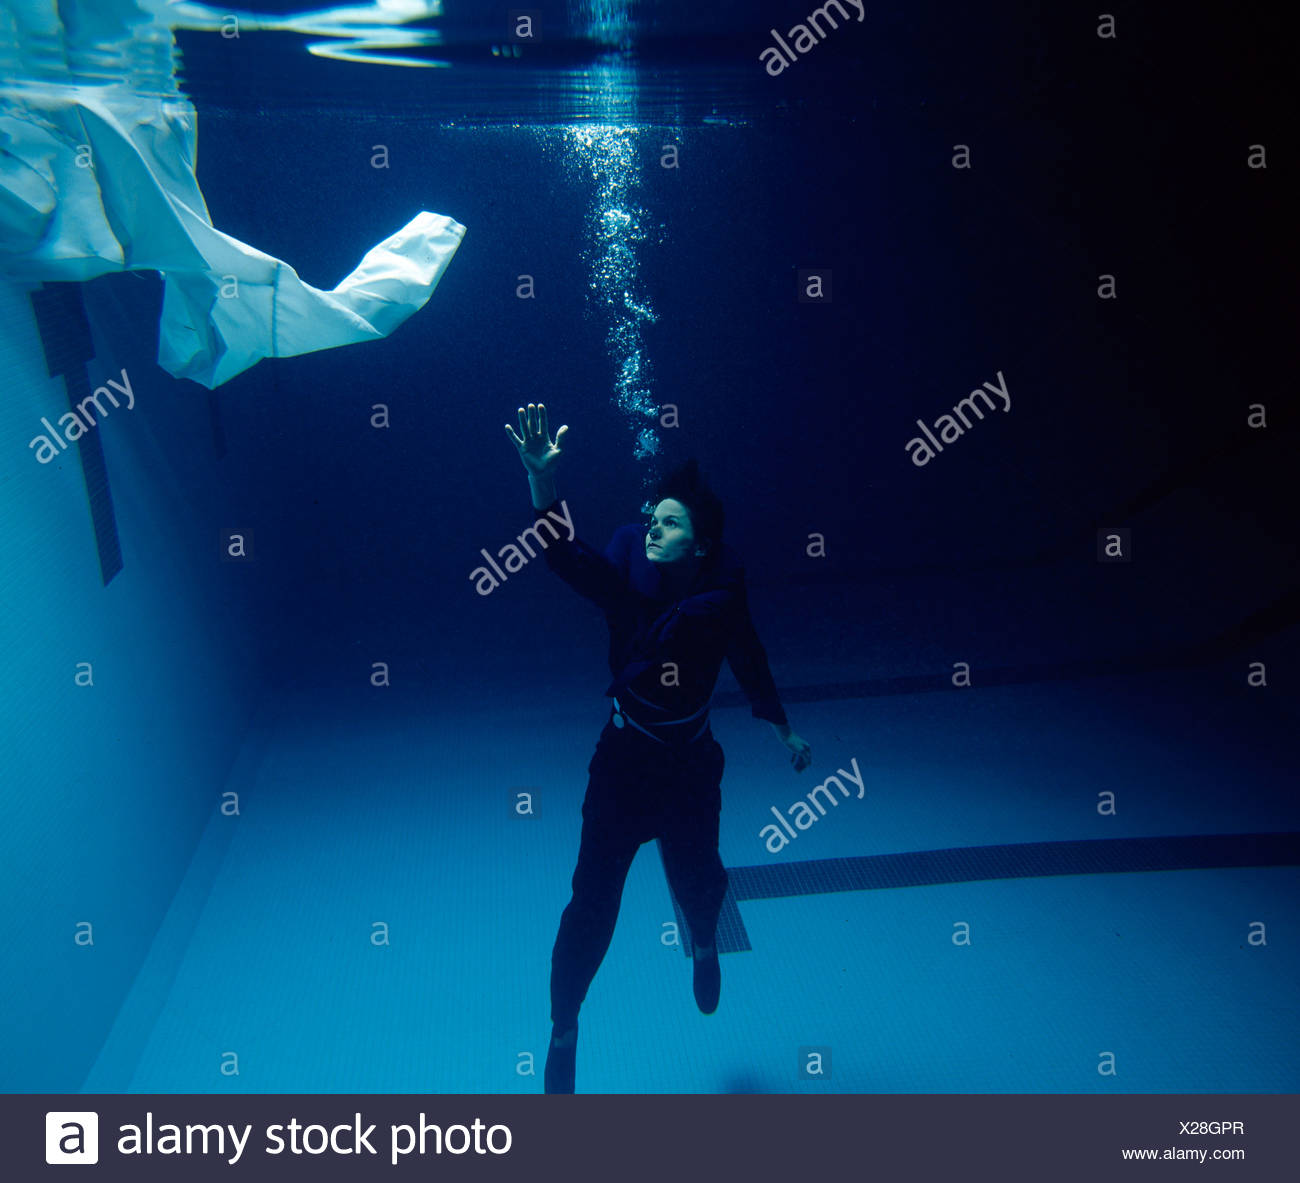 Drowning person reaching for help - Stock Image